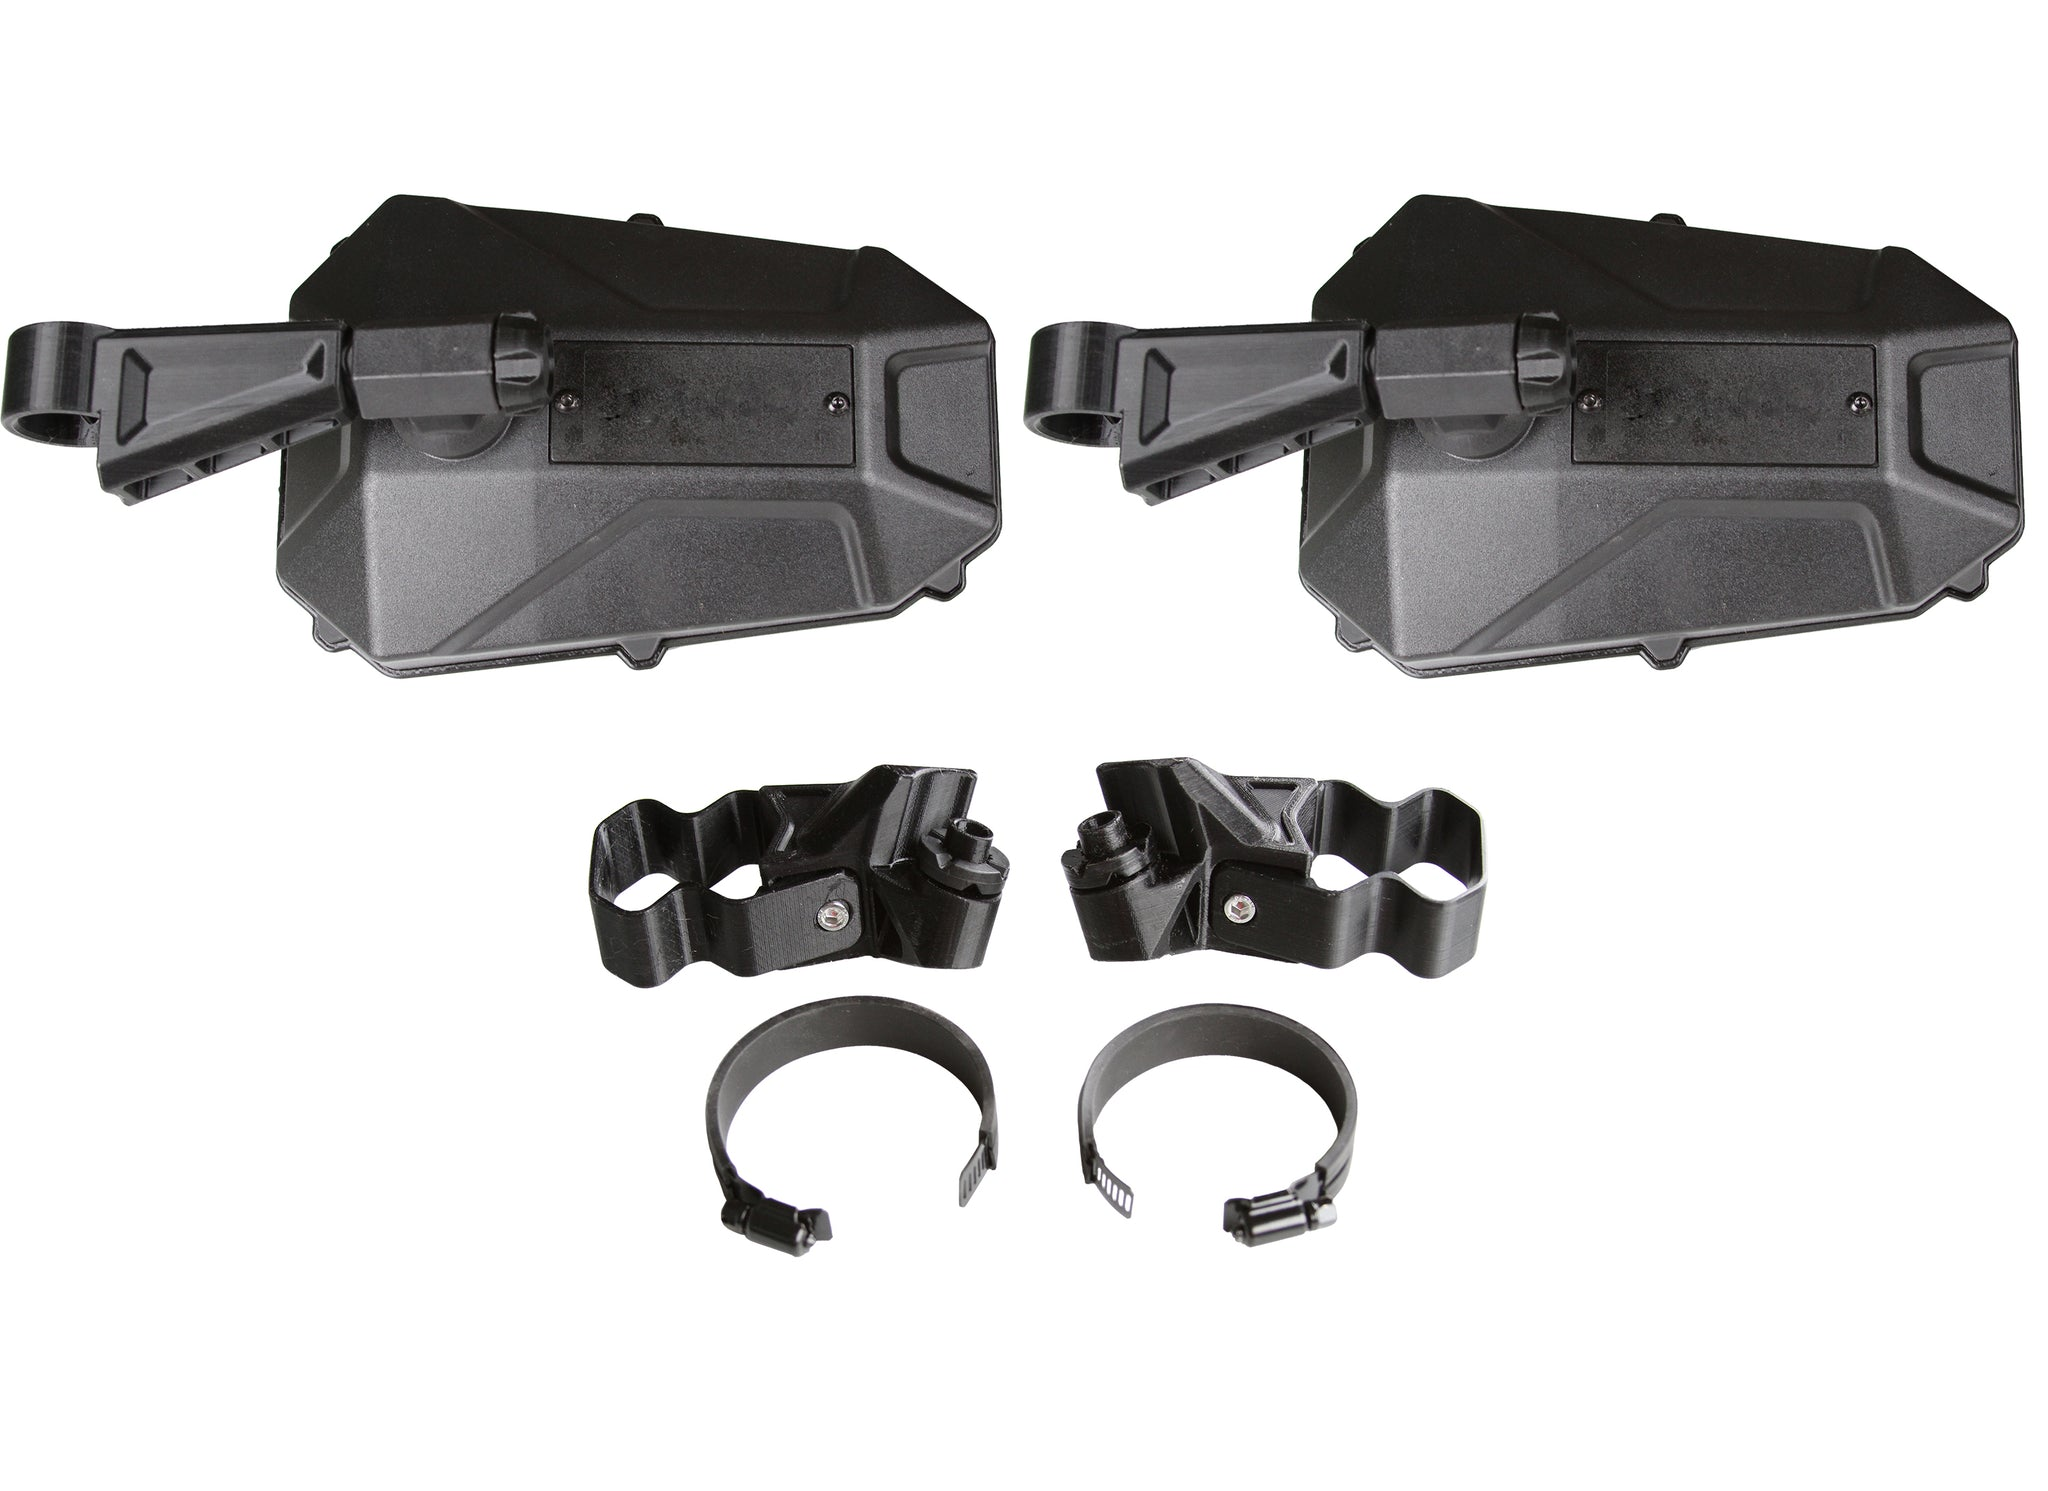 Elite Series 2 Universal Mirror Kit - with Blindspot 2 pack - profiled and round tube mounts included